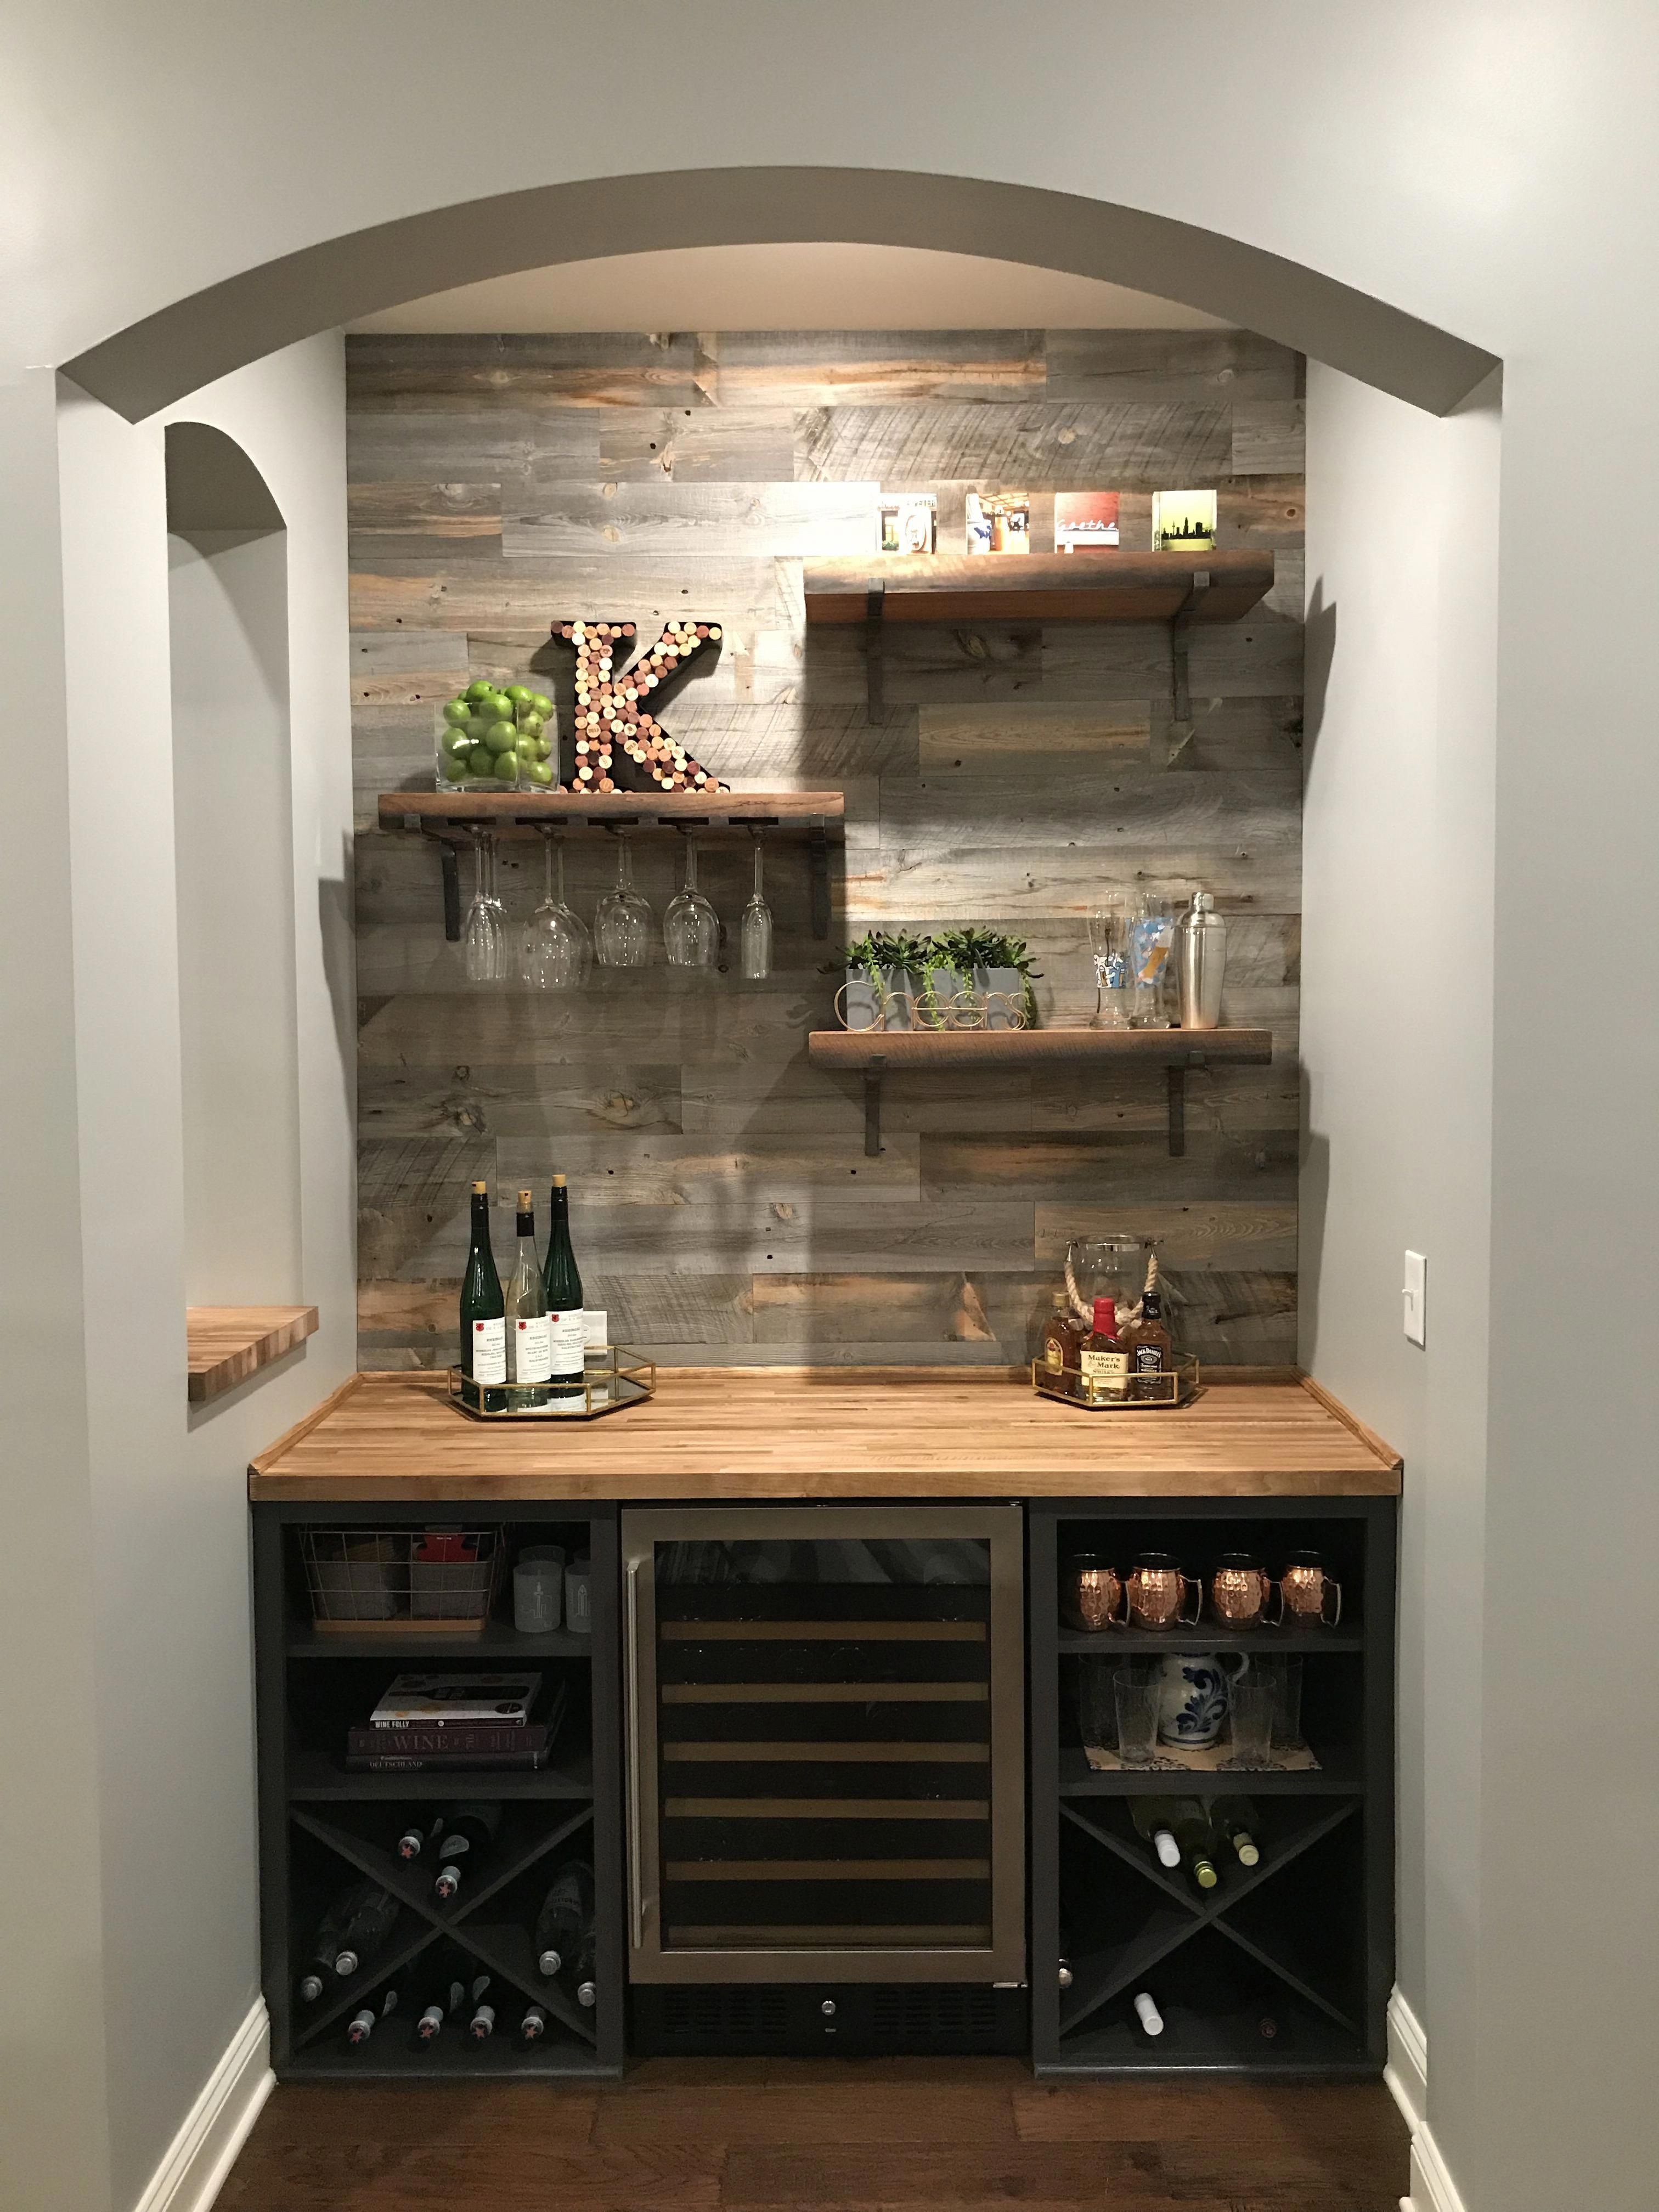 Mancave Design Home Bar Furniture Home Bar Designs Bars For Home